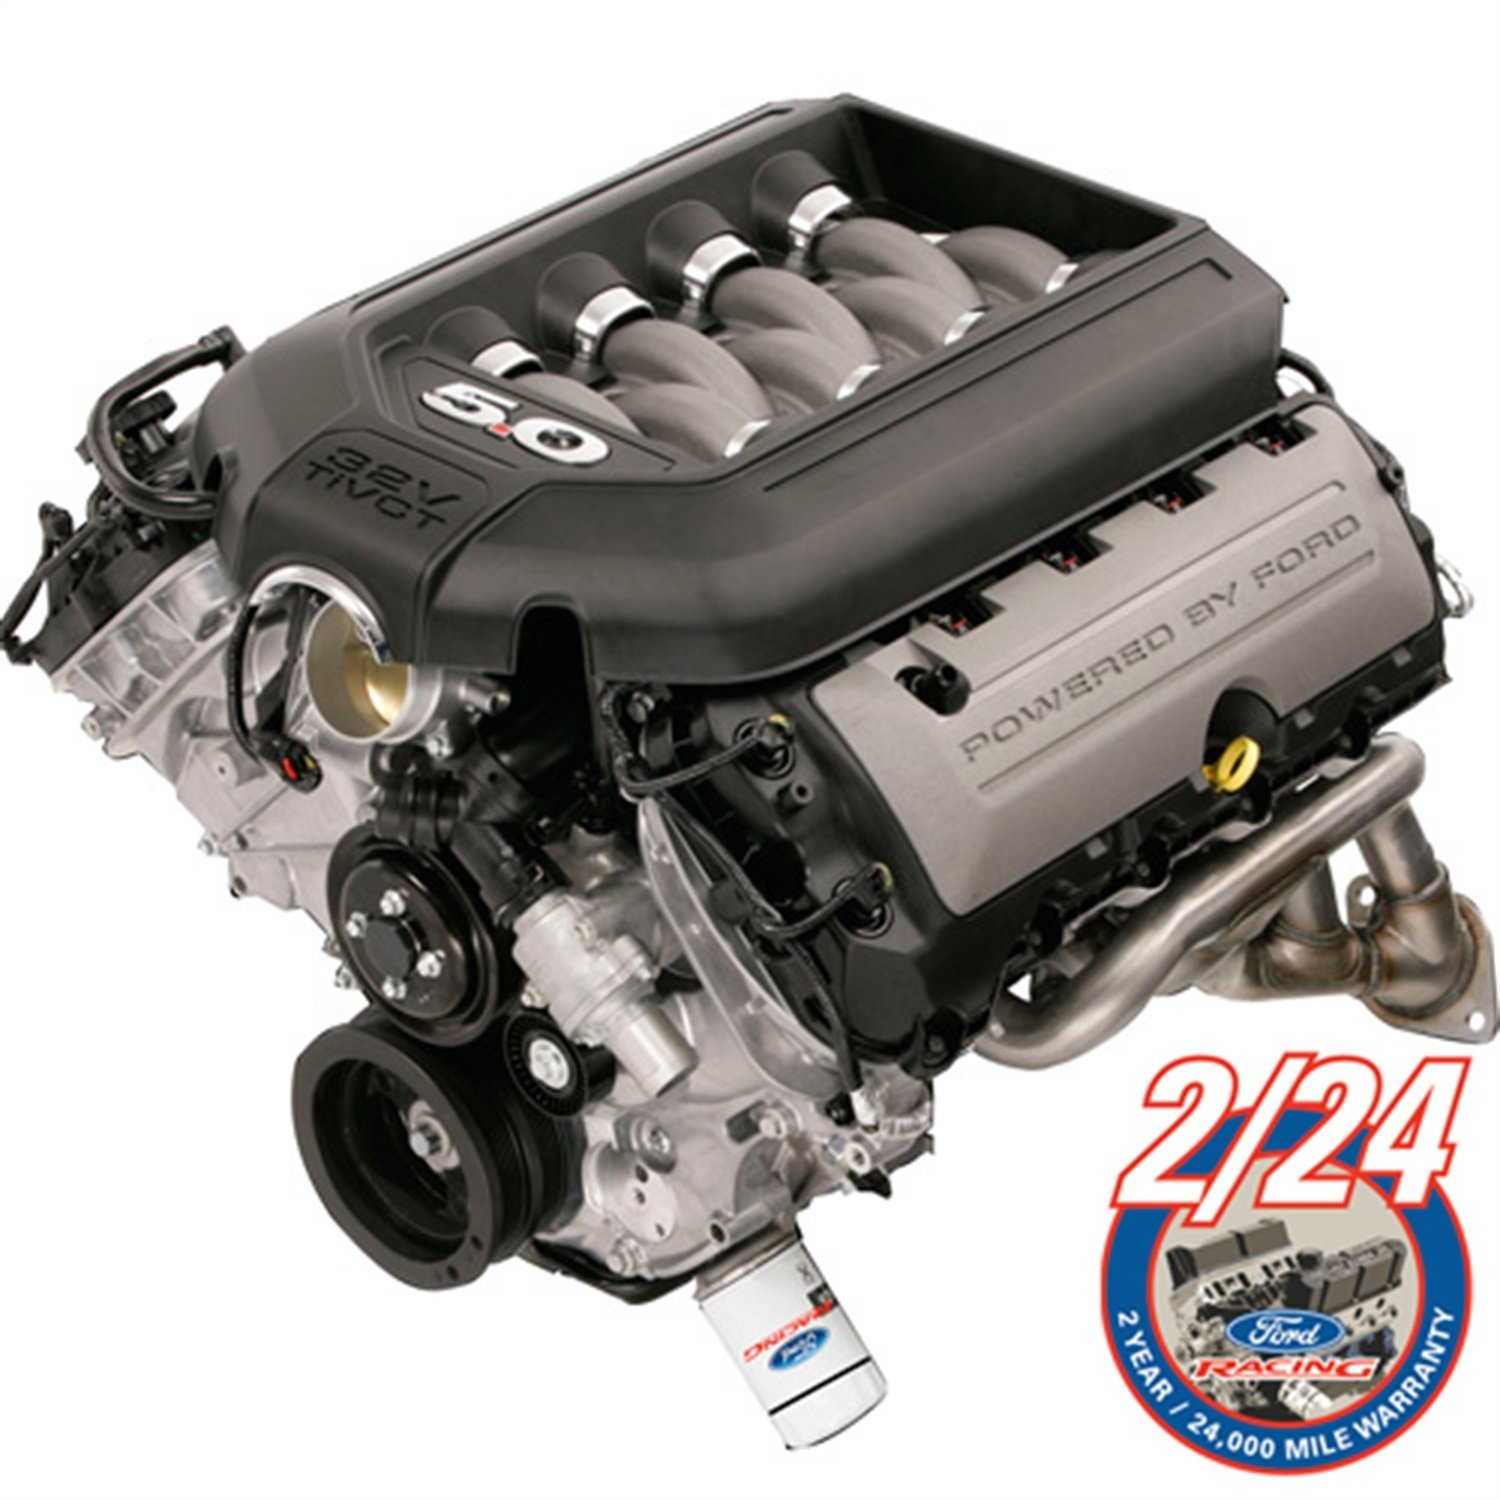 Cheap Ford Crate Engines 4 6, find Ford Crate Engines 4 6